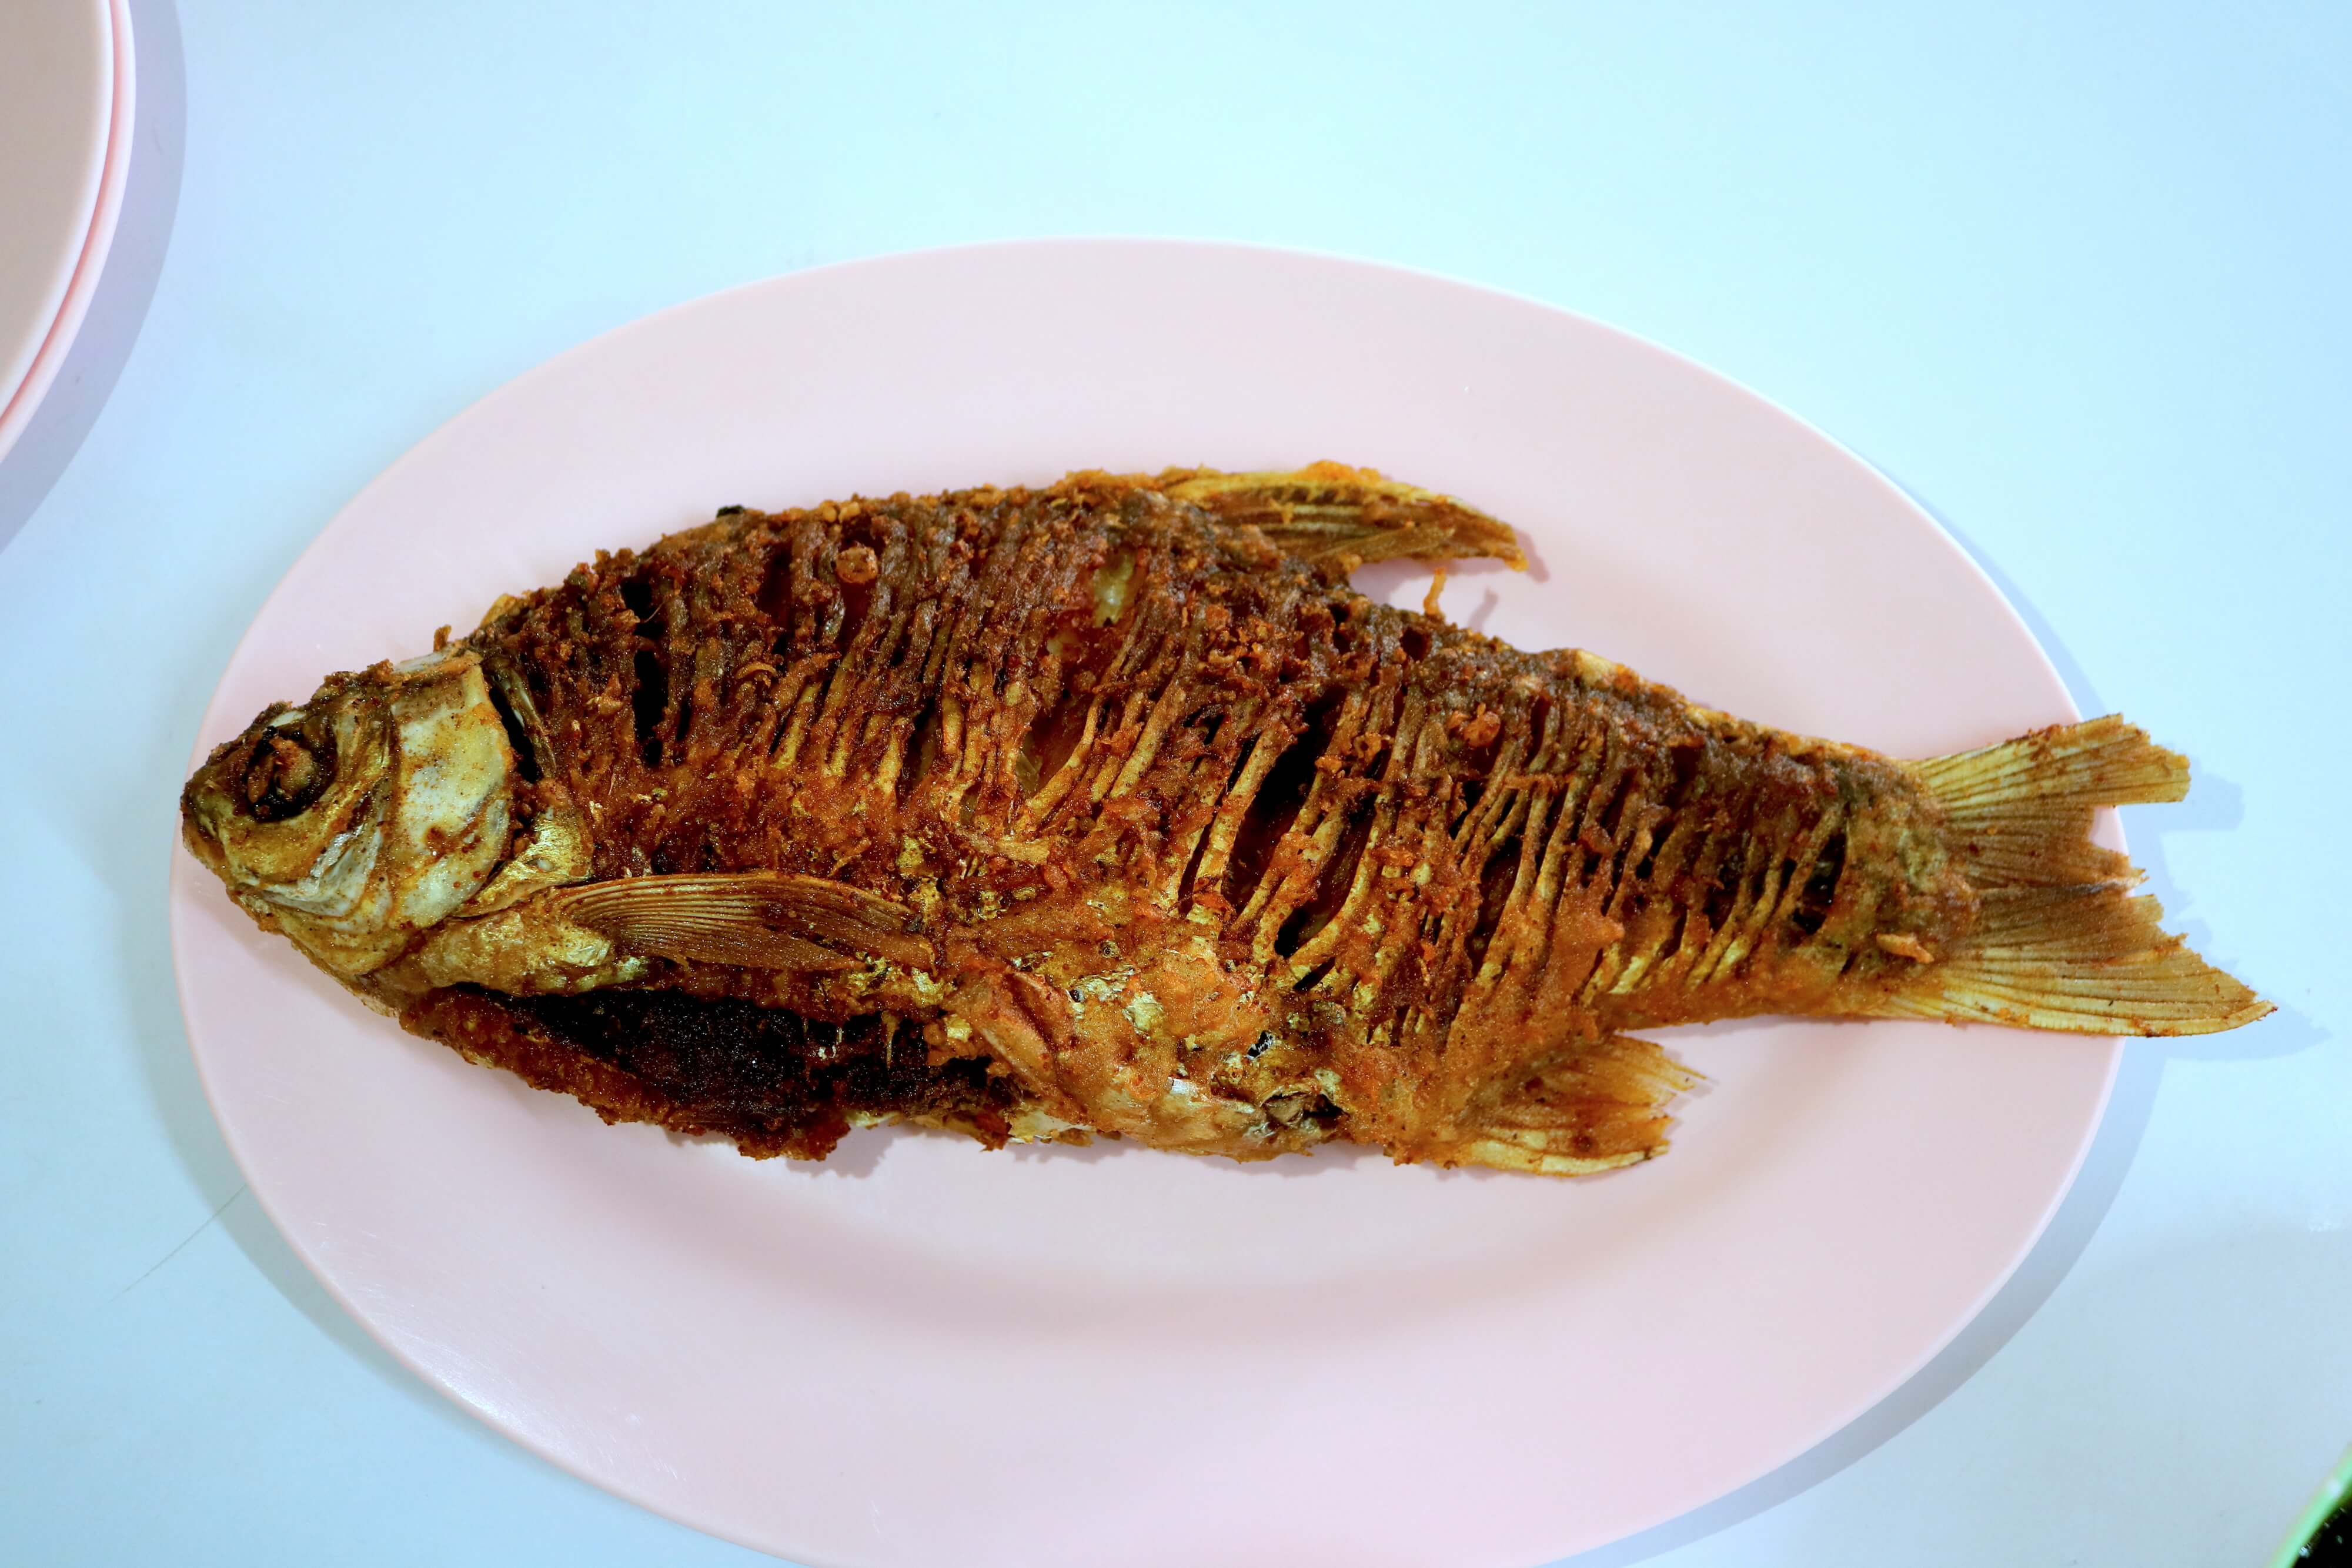 Silver barb is one of many fish that Esaan (and Laos) people love to ferment. The umami possibilities of foods like this can just never be underestimated!